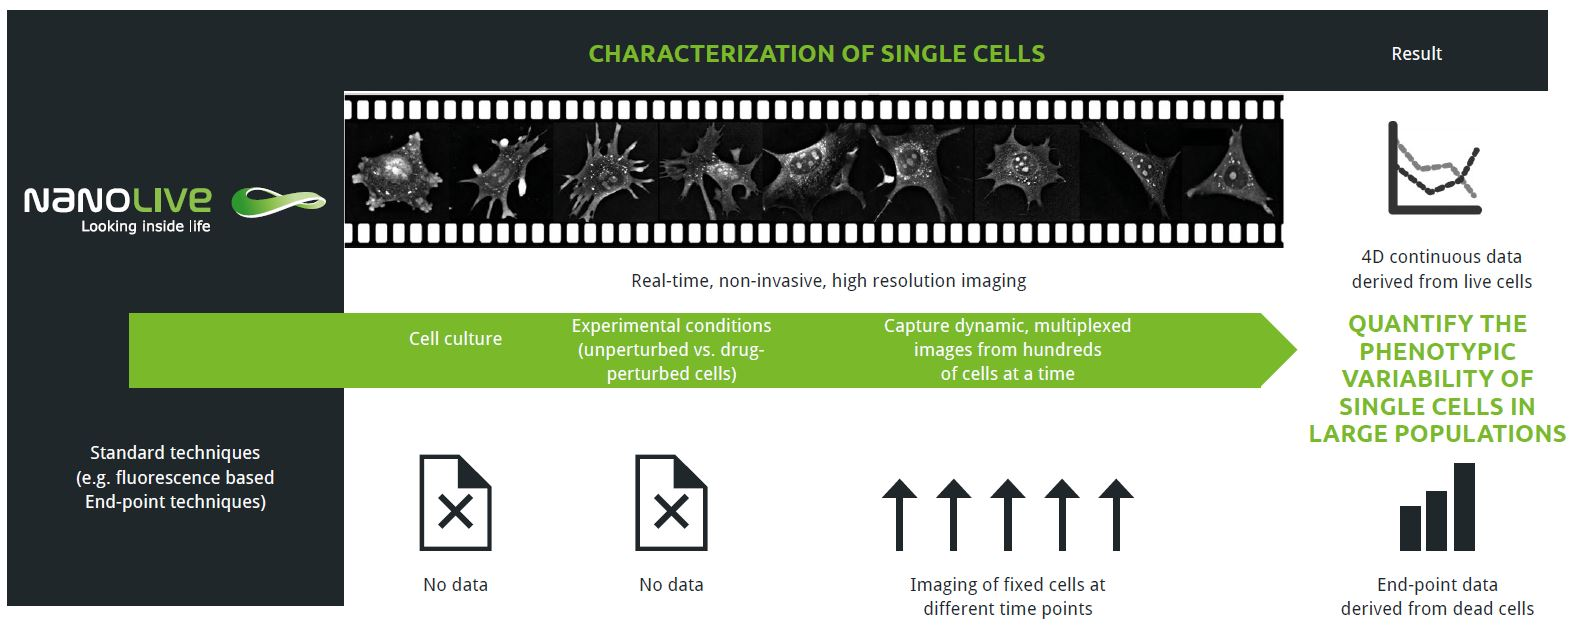 Image - Characterization of single cells